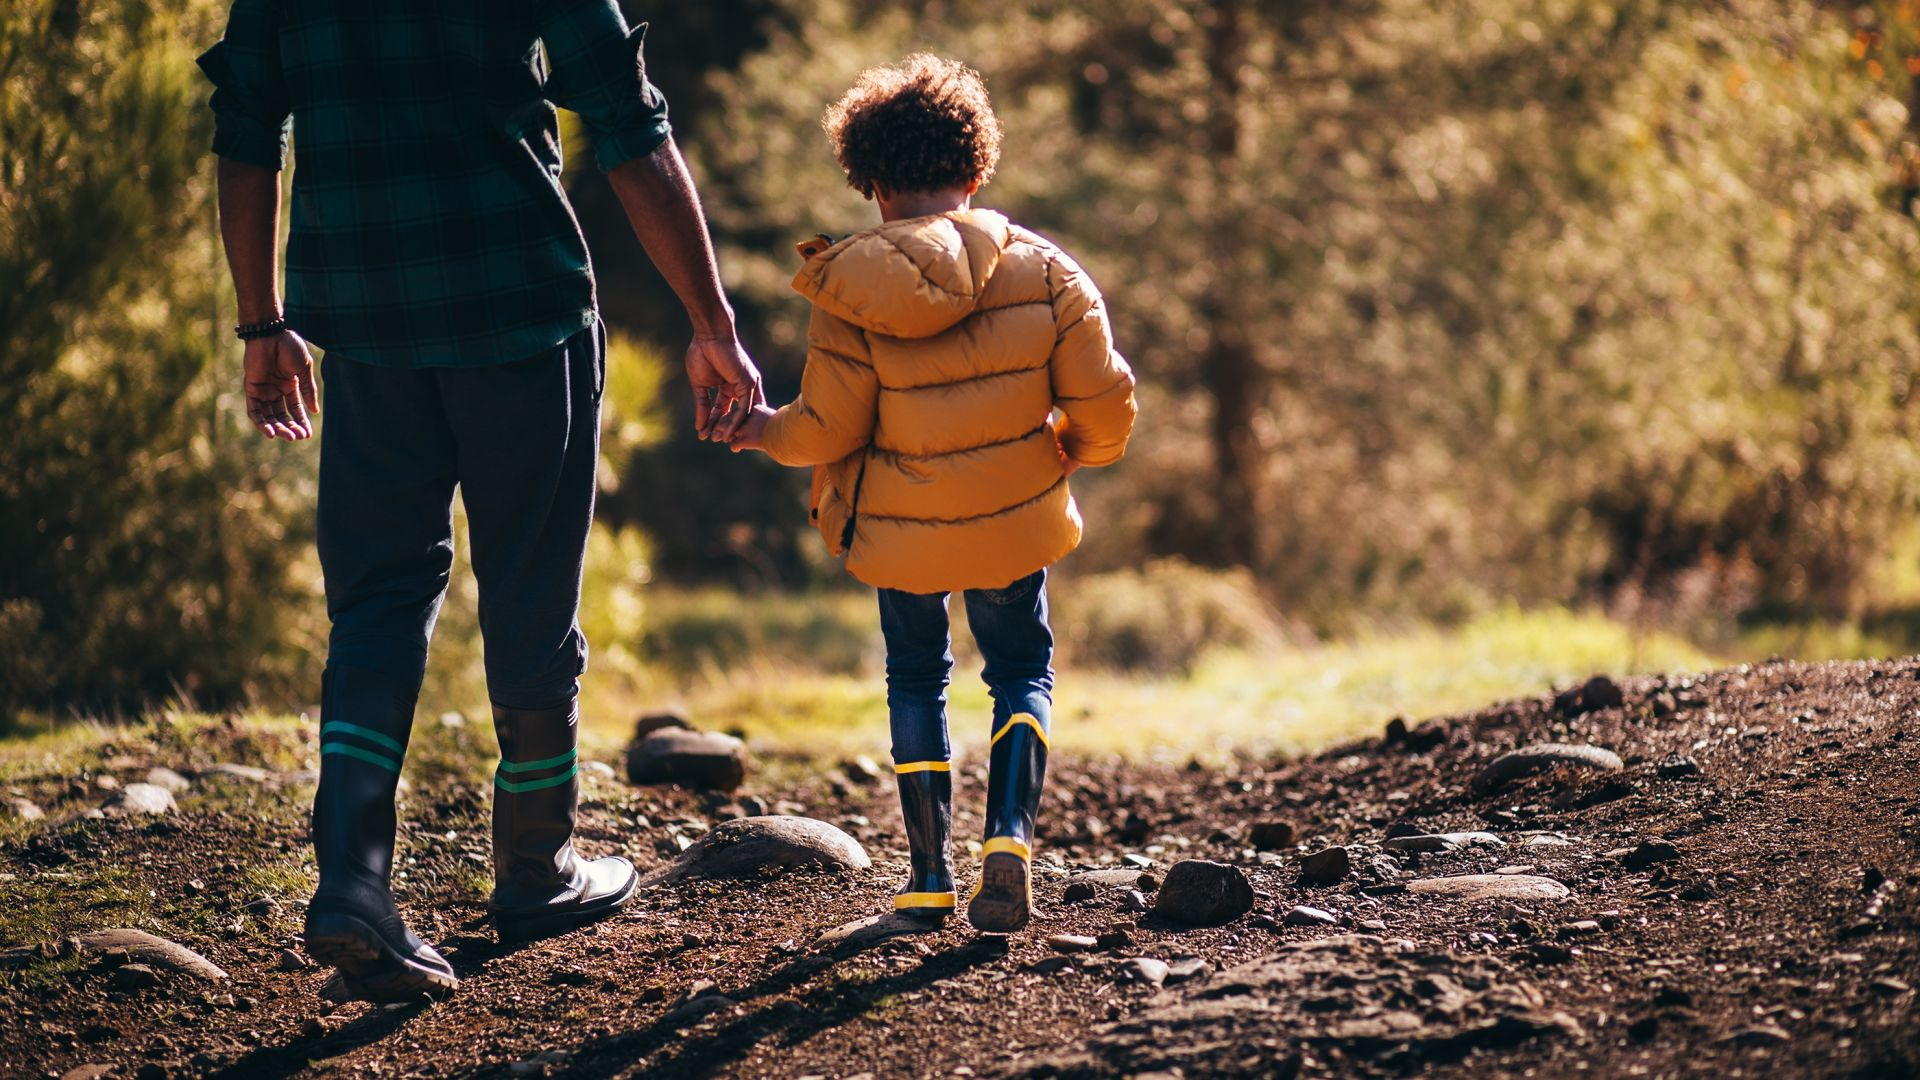 A Little Boy Hiking with Dad